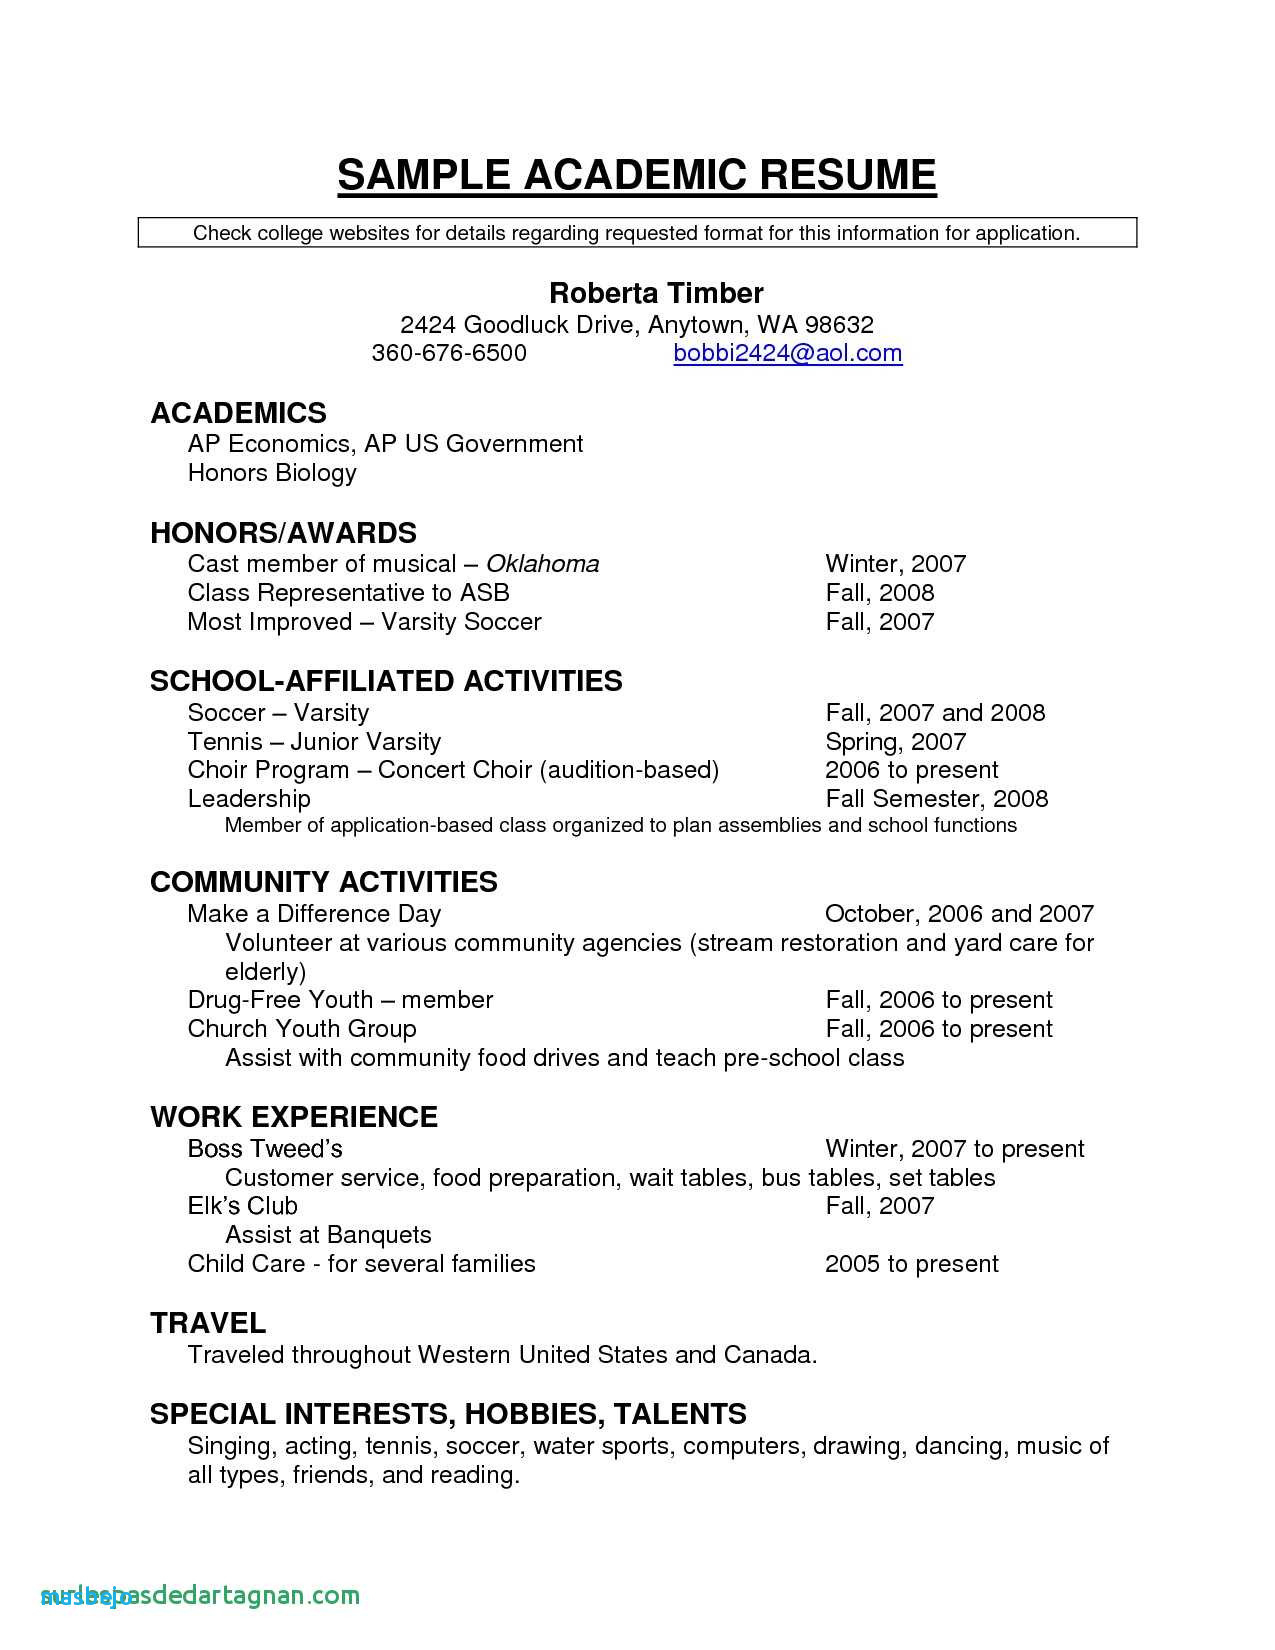 Hobbies for Resume - Puter Resume Examples Unique Resume for Highschool Students